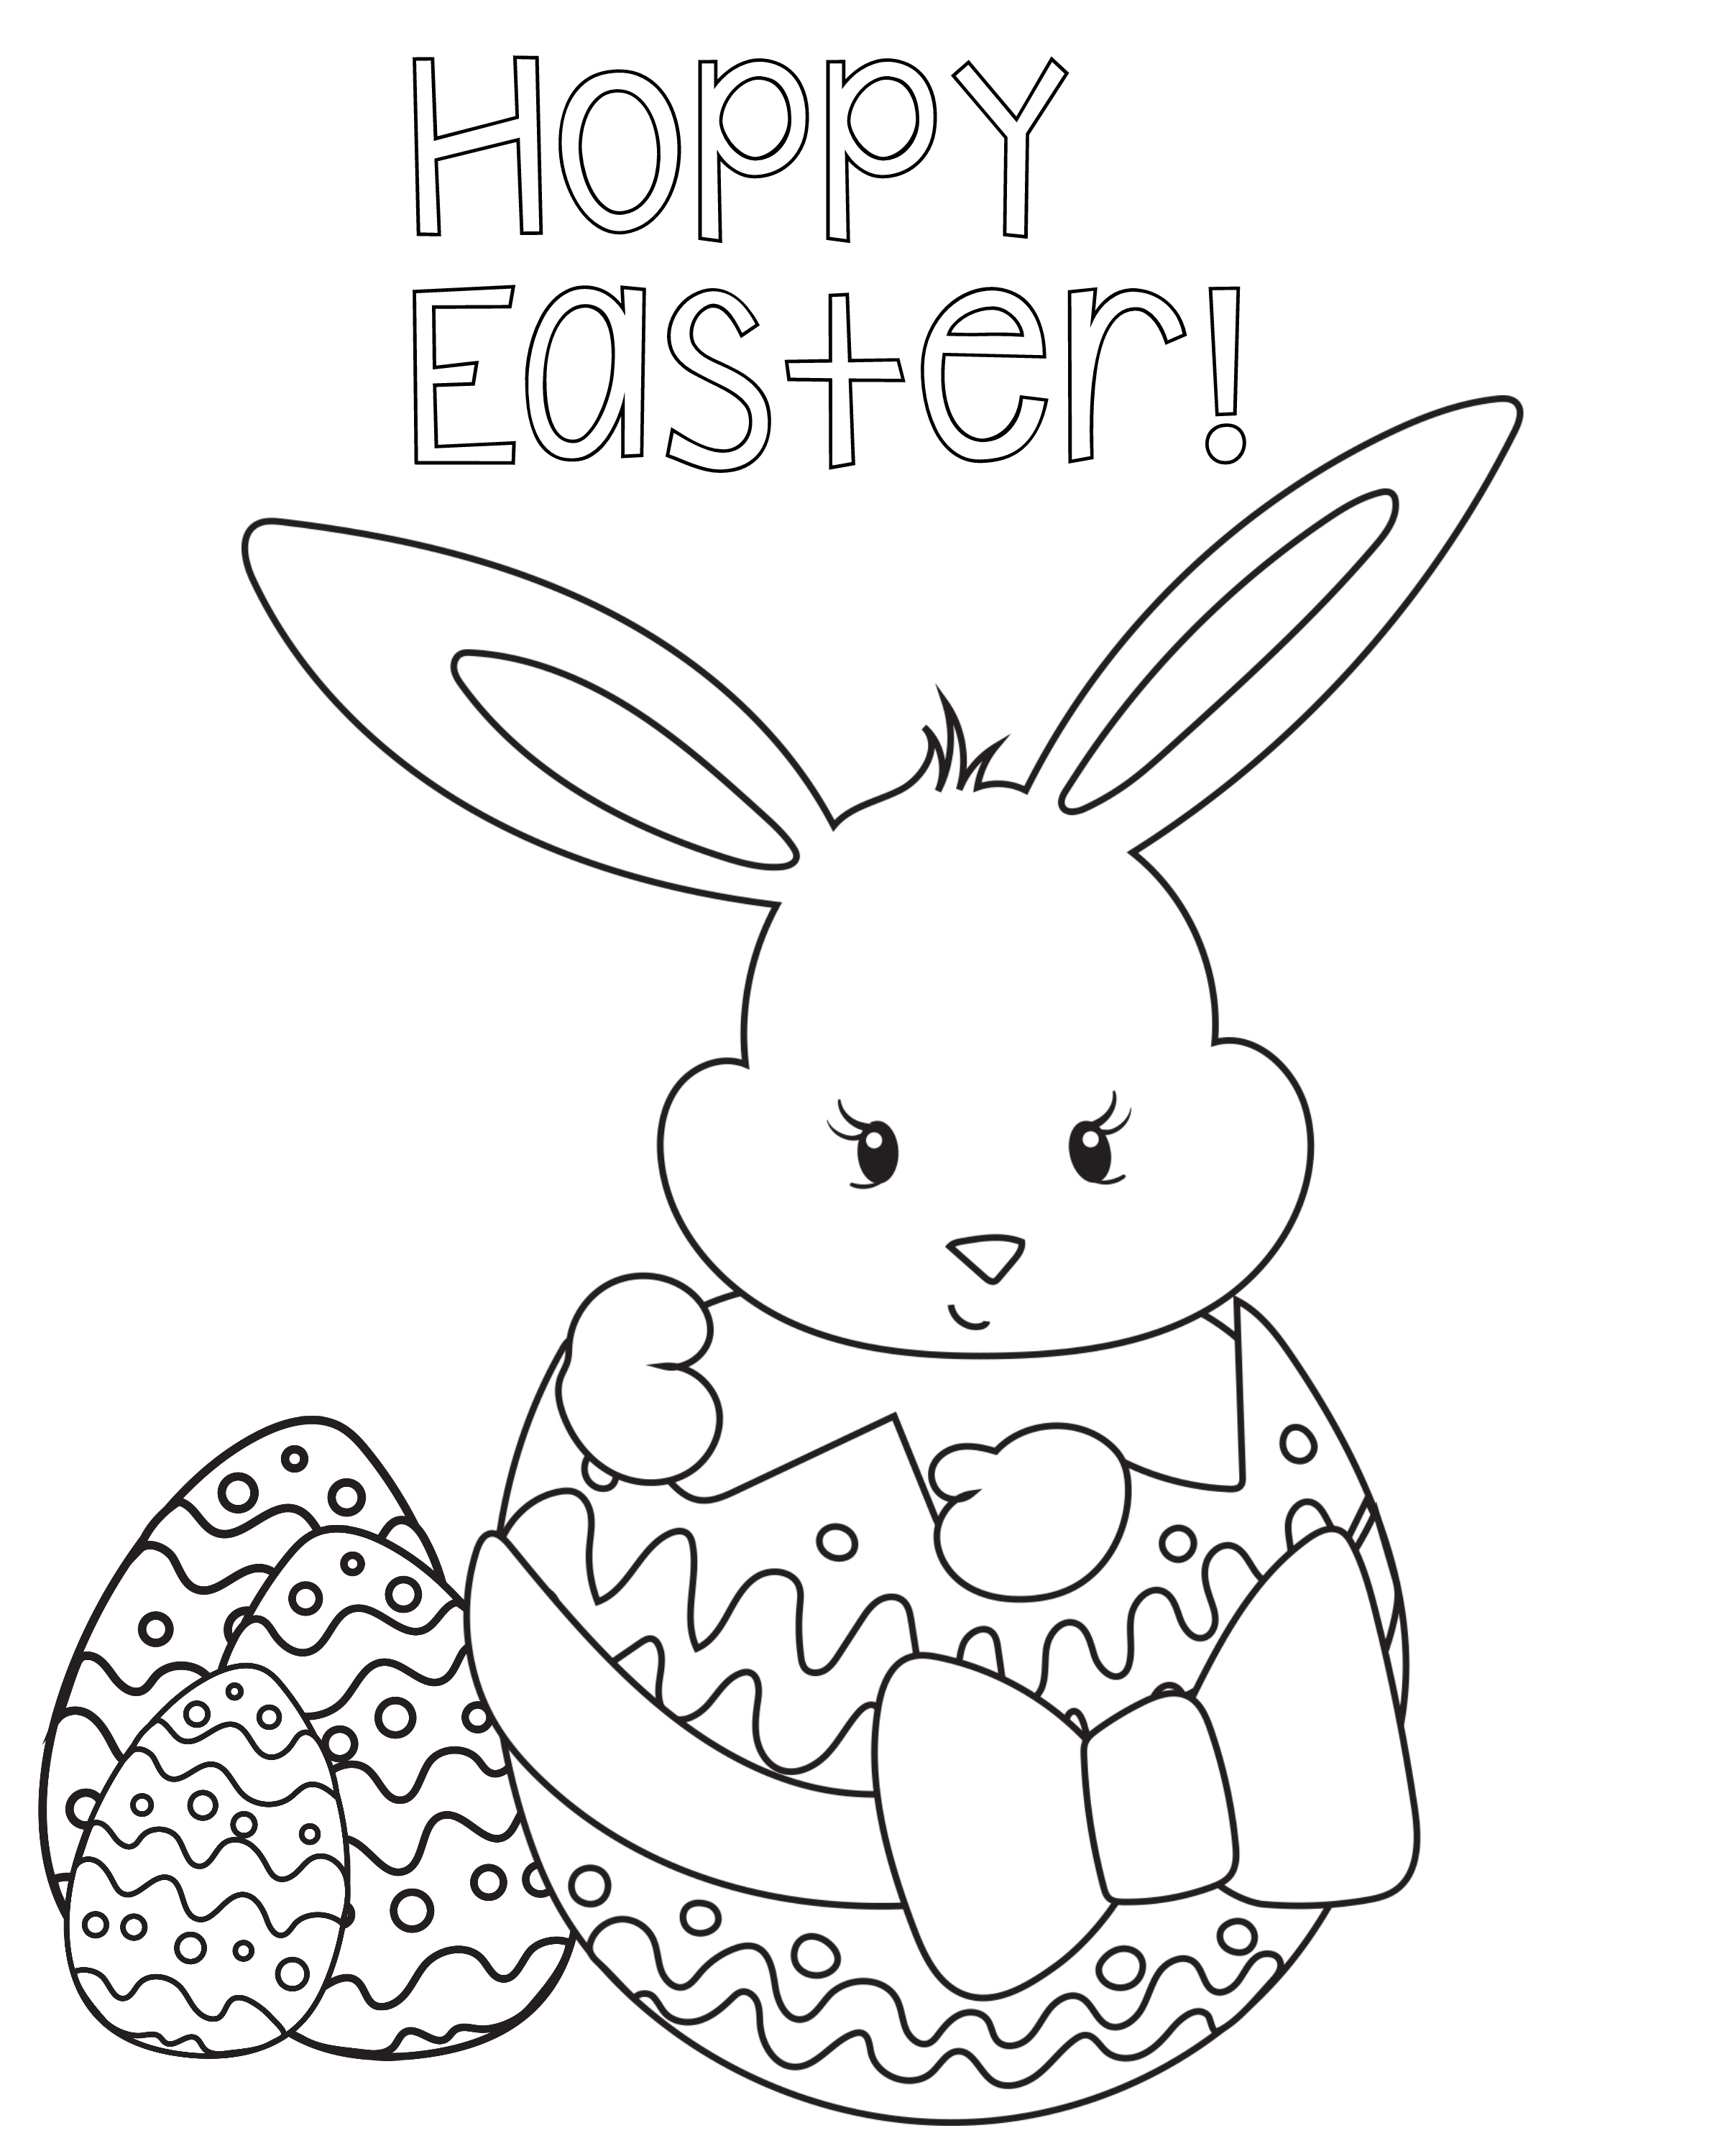 Easter Printable Coloring Pages Boys - 9.17.kaartenstemp.nl • - Free Printable Easter Coloring Pages